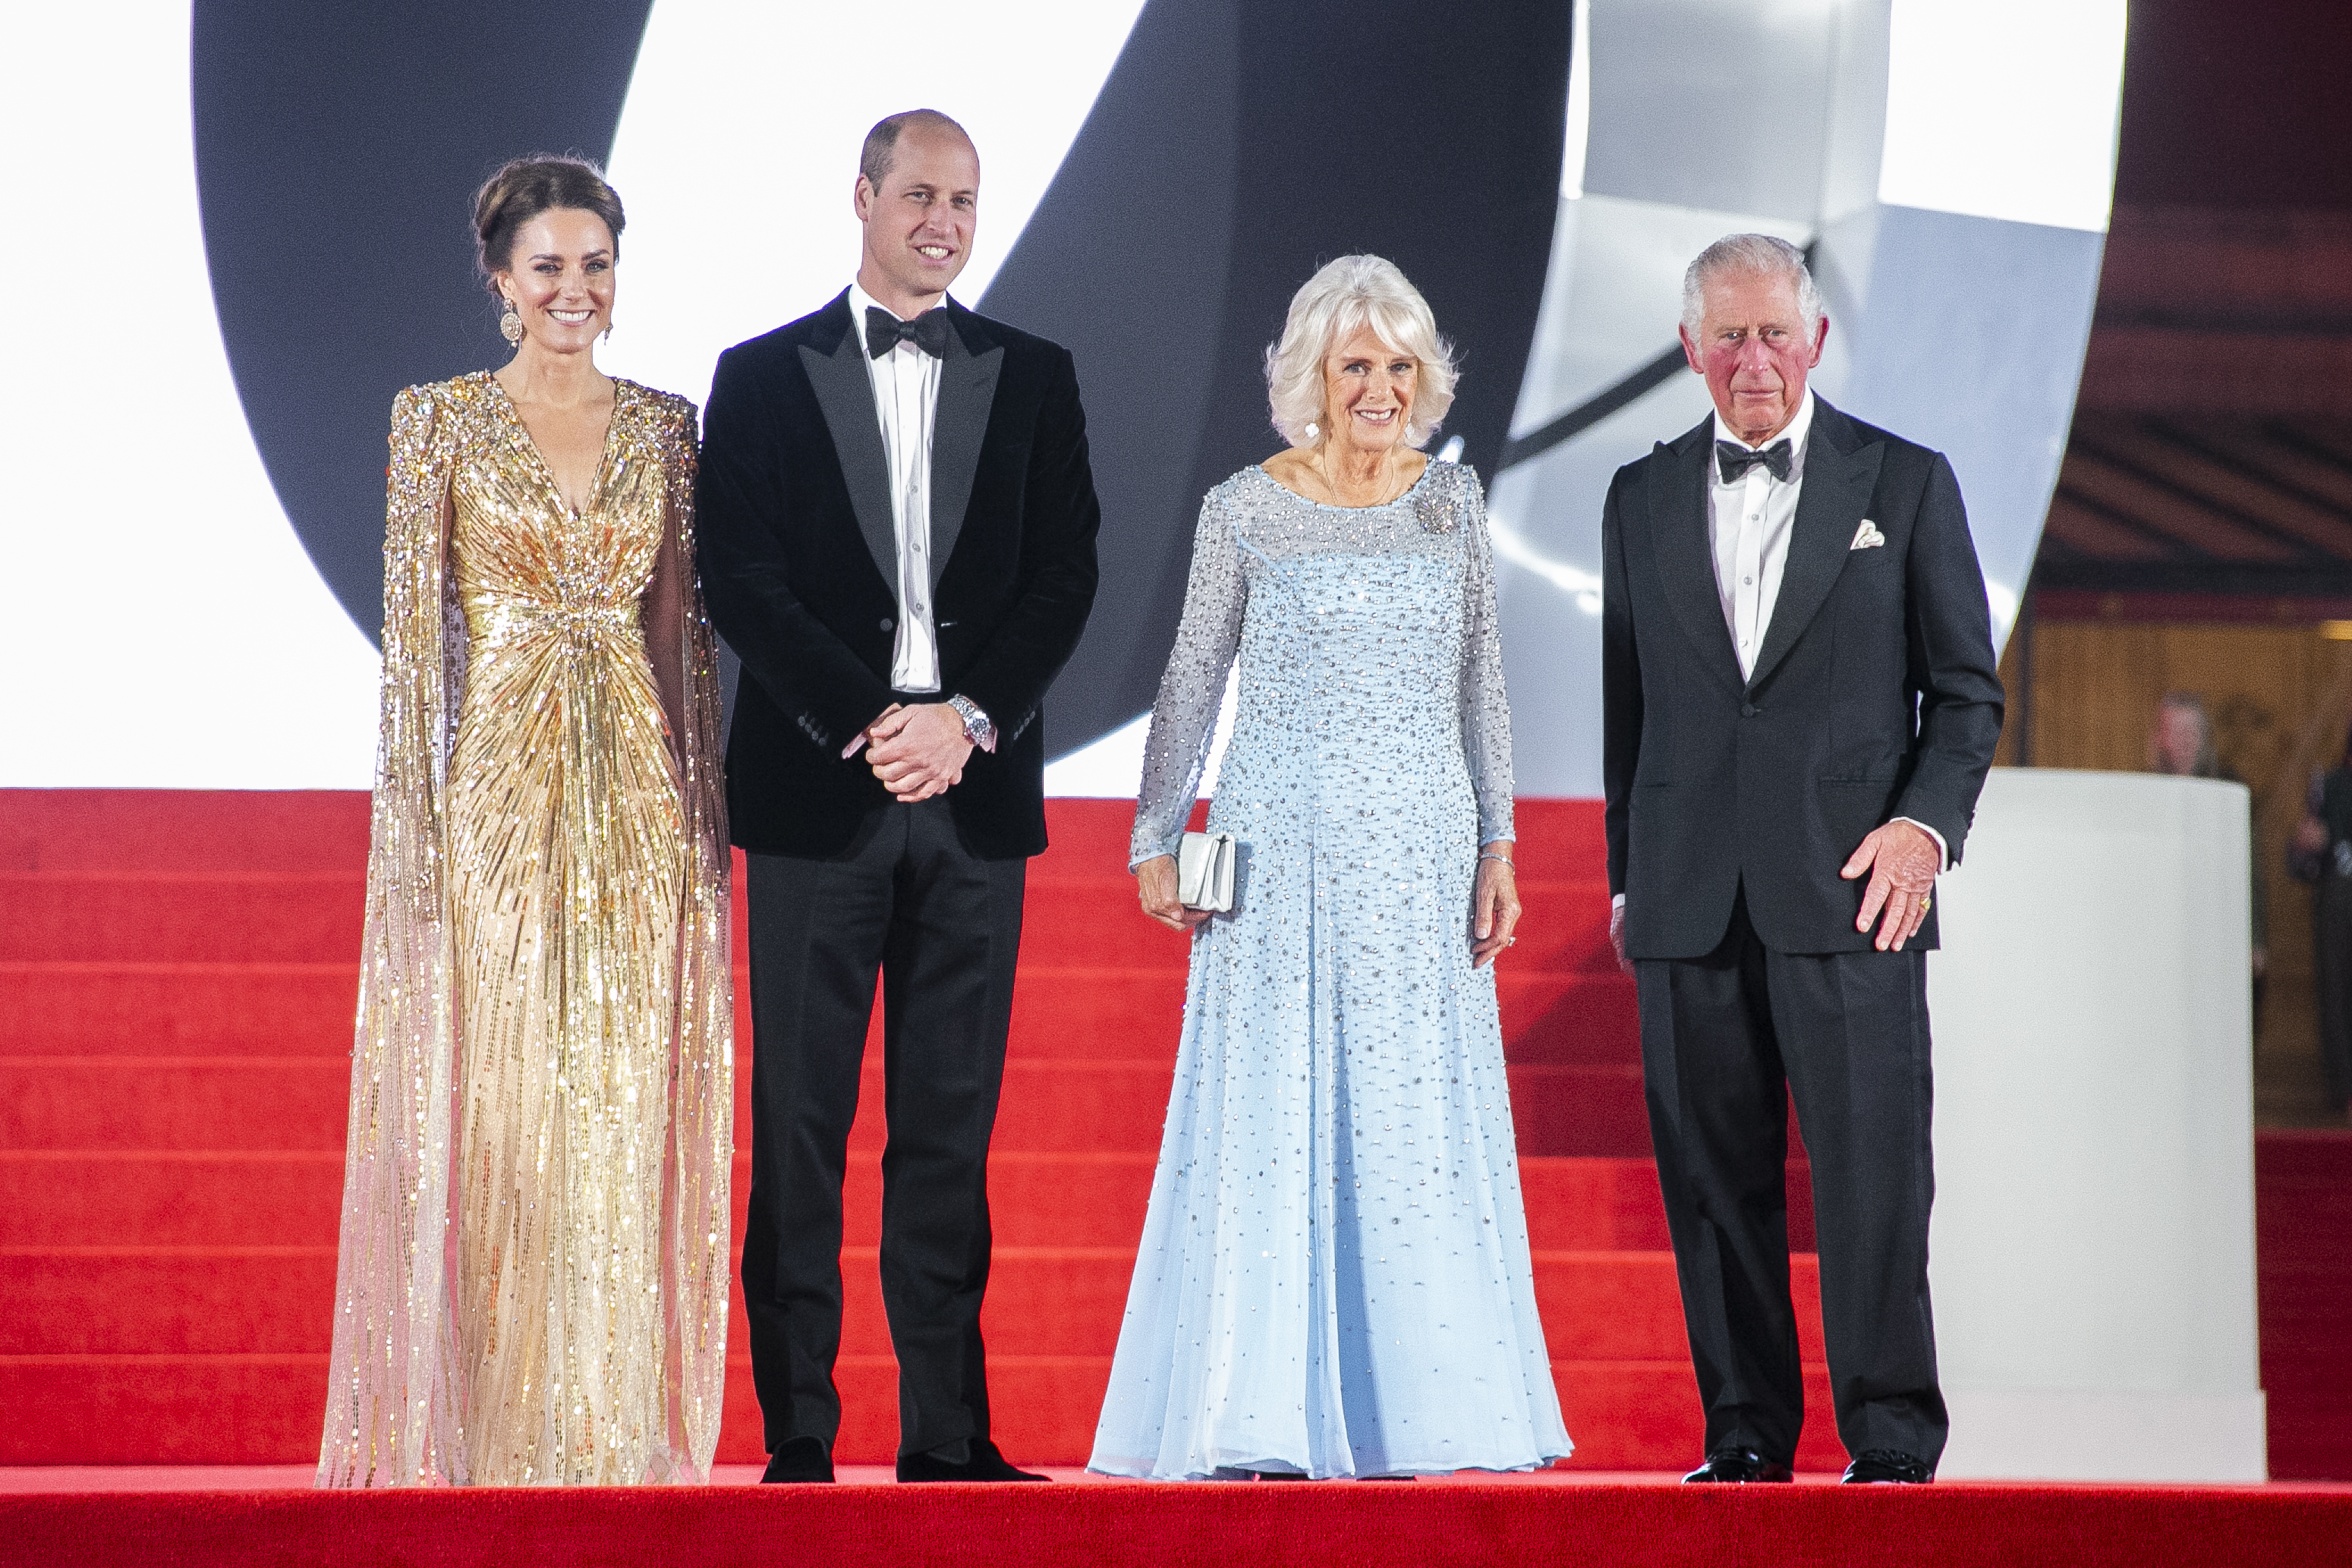 Britain's Prince Charles, from left, his wife Camilla the Duchess of Cornwall, Kate the Duchess of Cambridge and her husband Britain's Prince William are photographed upon arrival for the World premiere of the film 'No Time To Die', in London Tuesday, Sept. 28, 2021. (Photo by Joel C Ryan/Invision/AP)